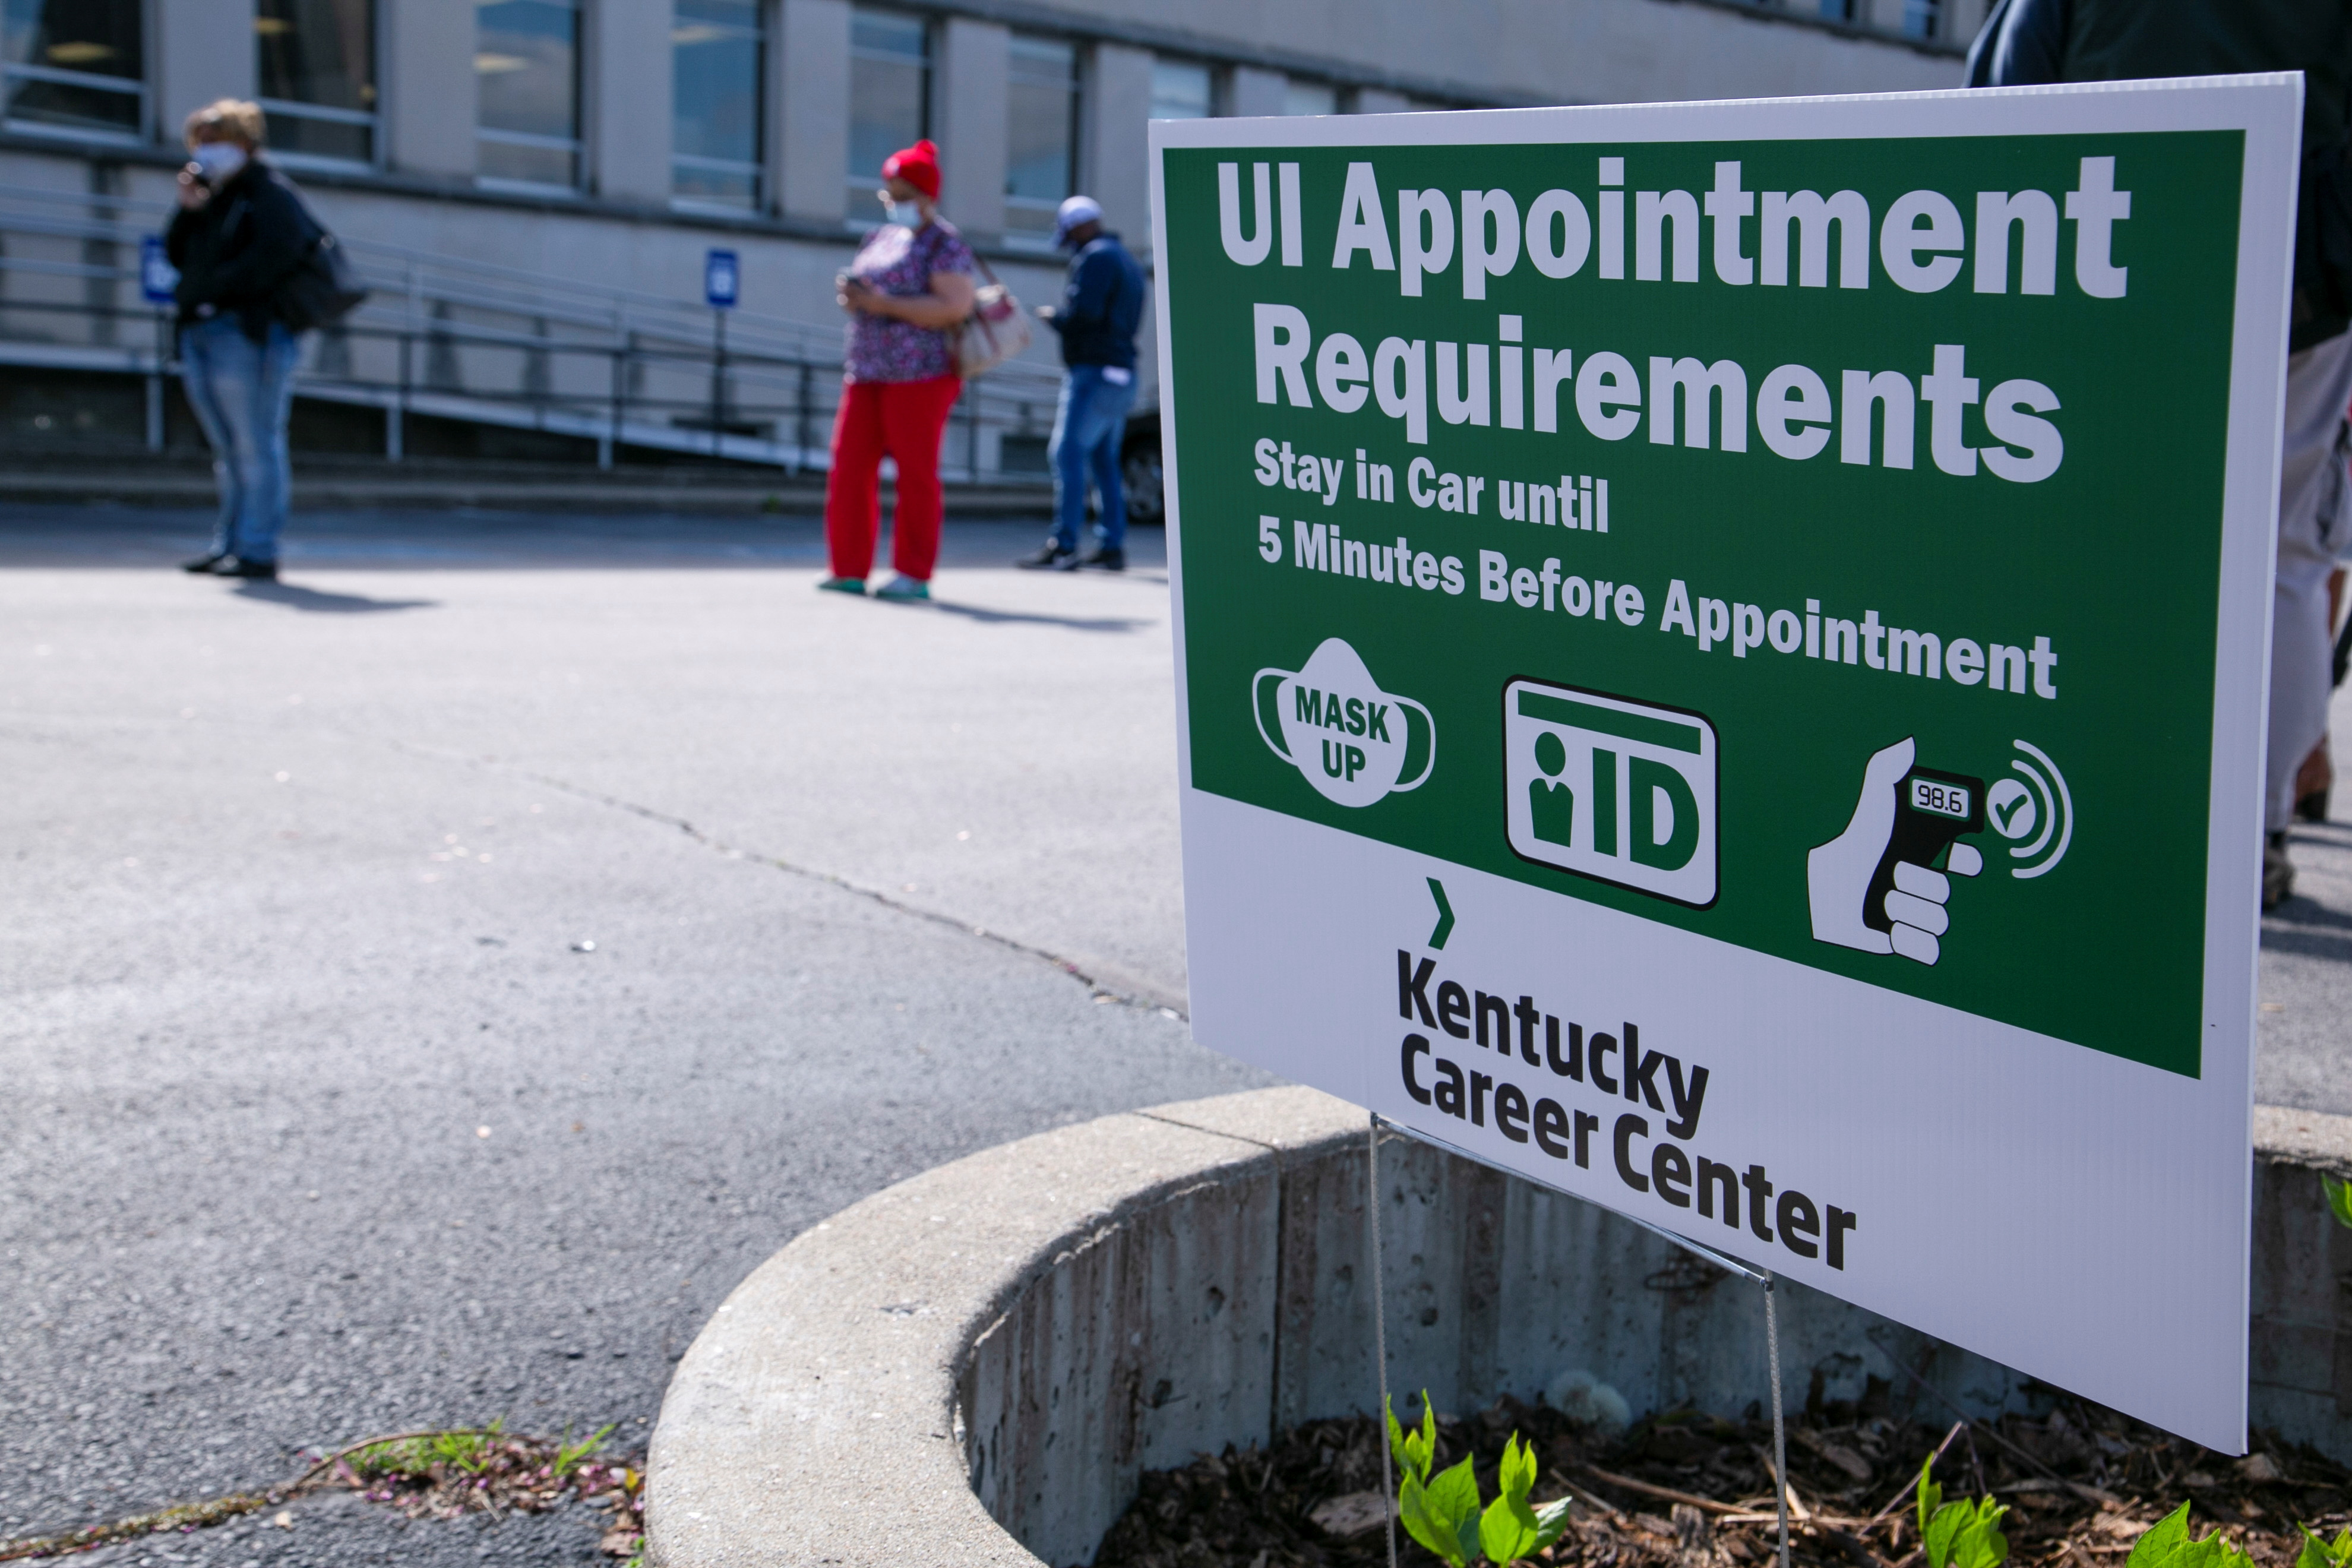 People wait in line as Kentucky Labor Cabinet reopens 13 Regional Career Centers for in-person unemployment insurance services, in Louisville, Kentucky, U.S., April 15, 2021. REUTERS/Amira Karaoud